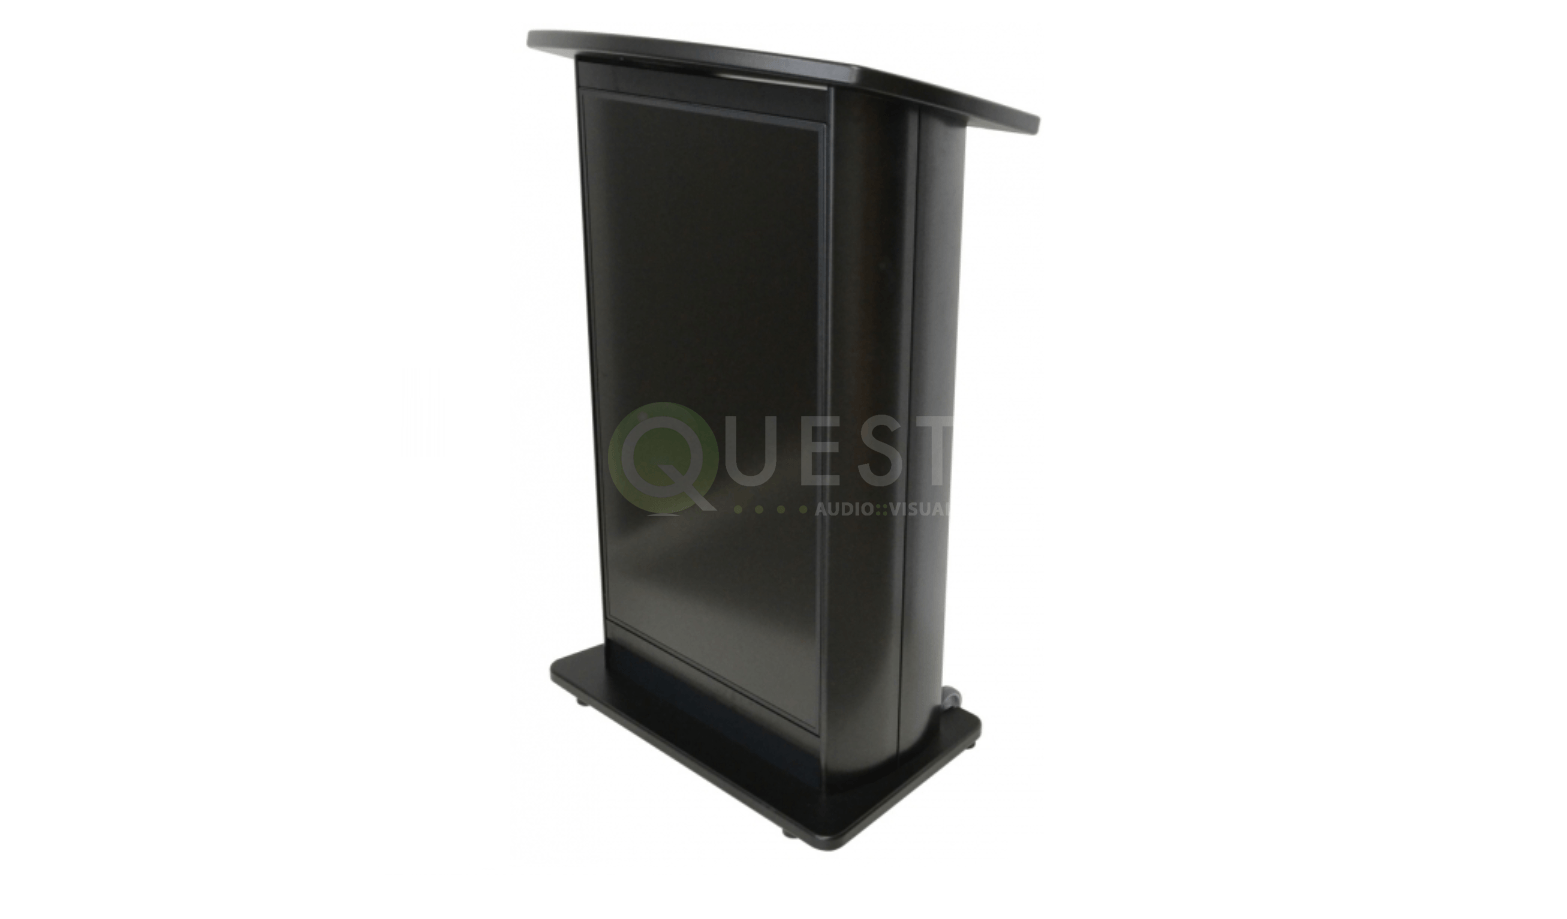 H2W Digital Display Podium available for rent in Toronto with Quest Audio Visual